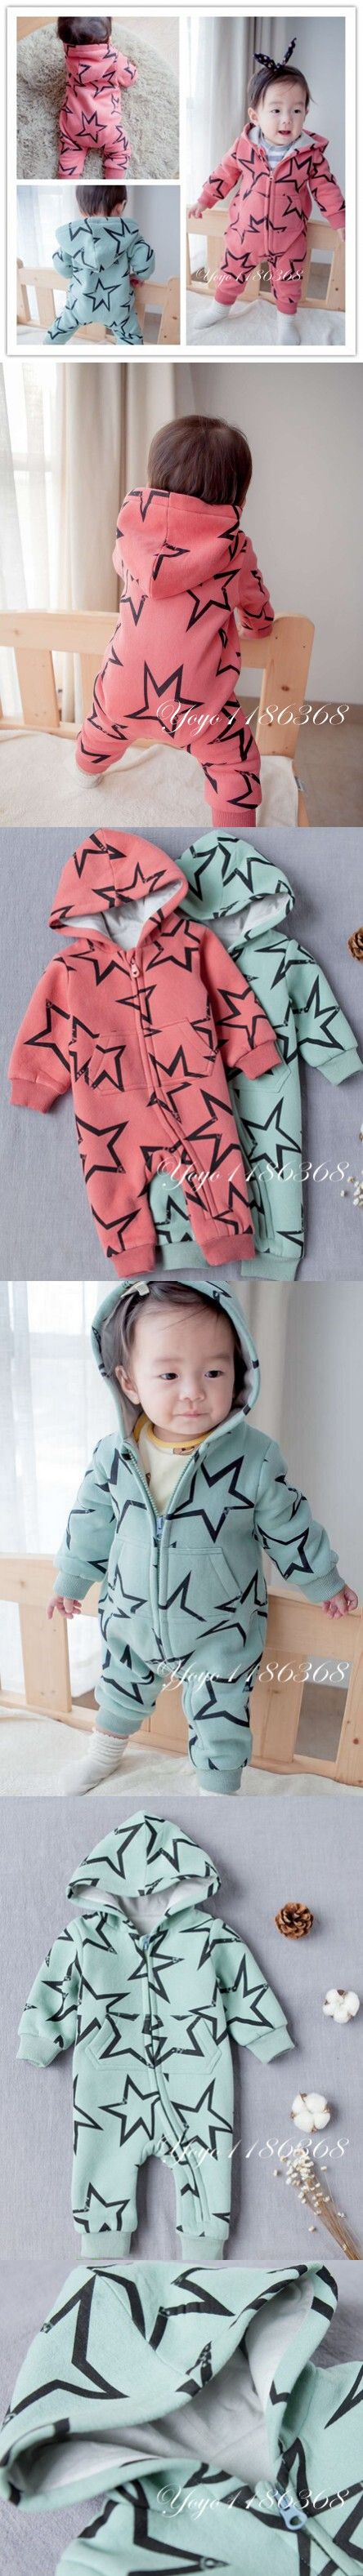 Baby Rompers Winter Thick Climbing Clothes Newborn Boys Girls Warm Romper cotton star printed Hooded Outwear jumpsuit $22.47